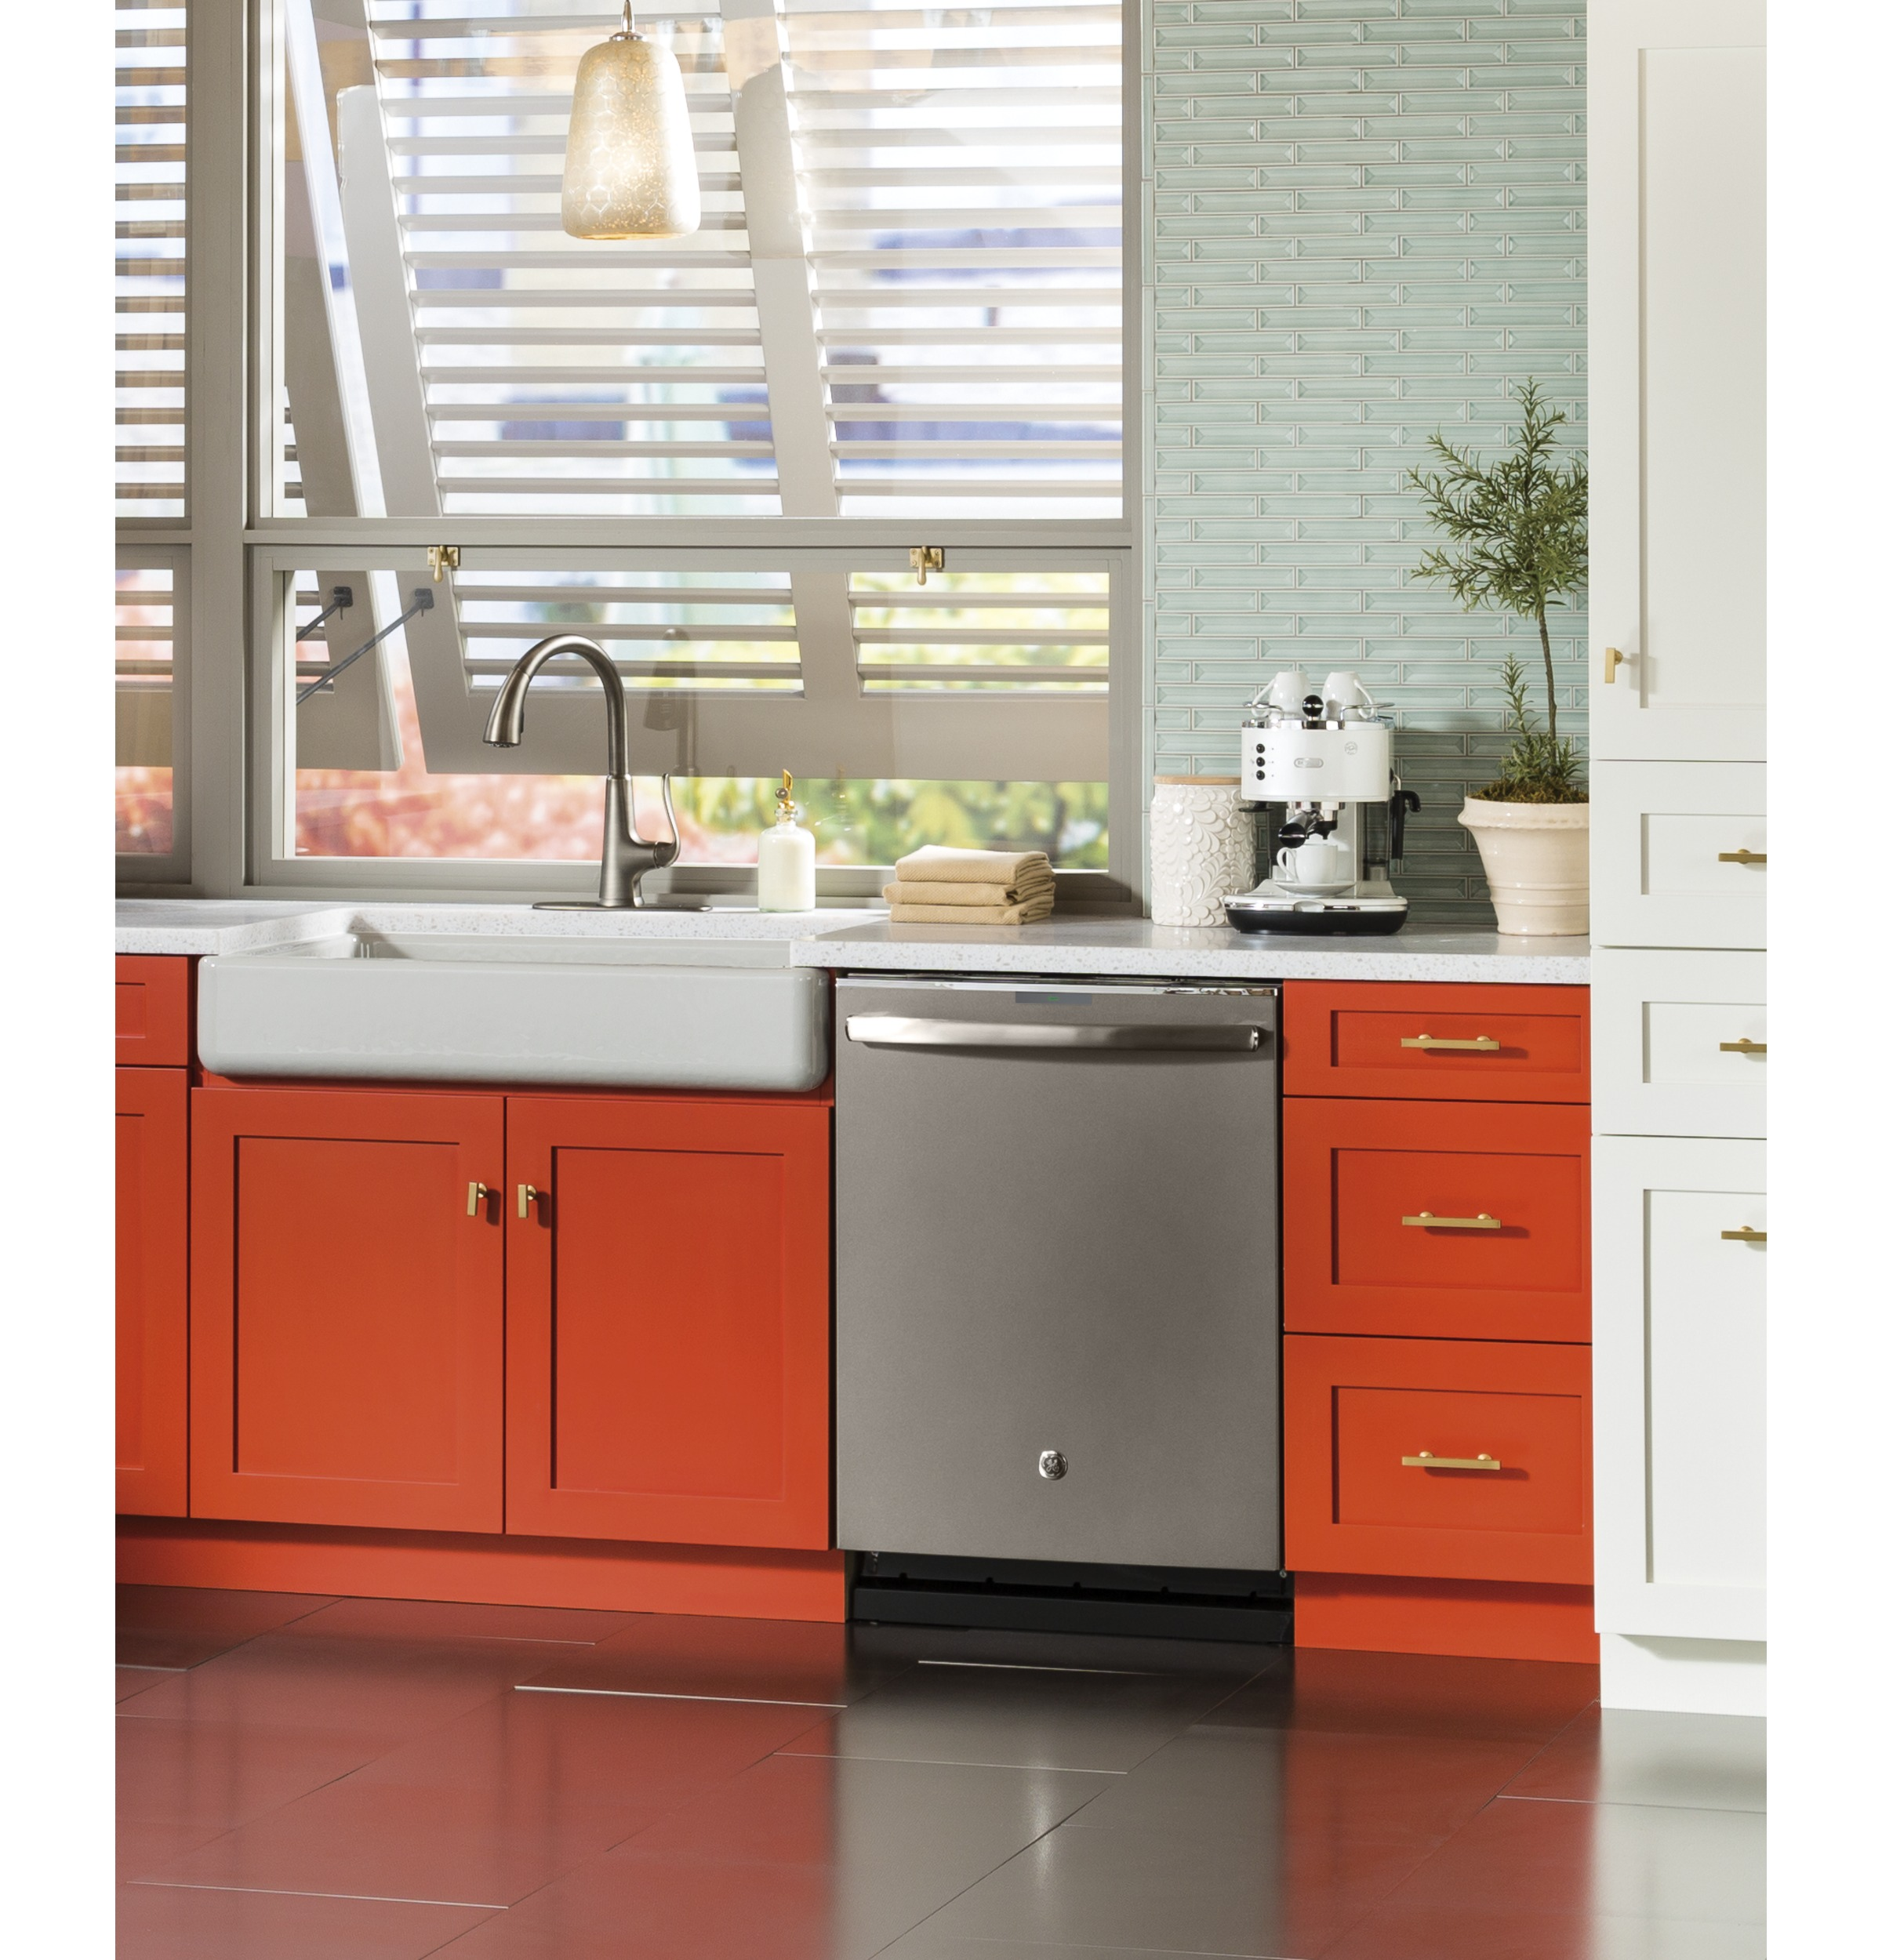 kitchen appliance color KBtribechat